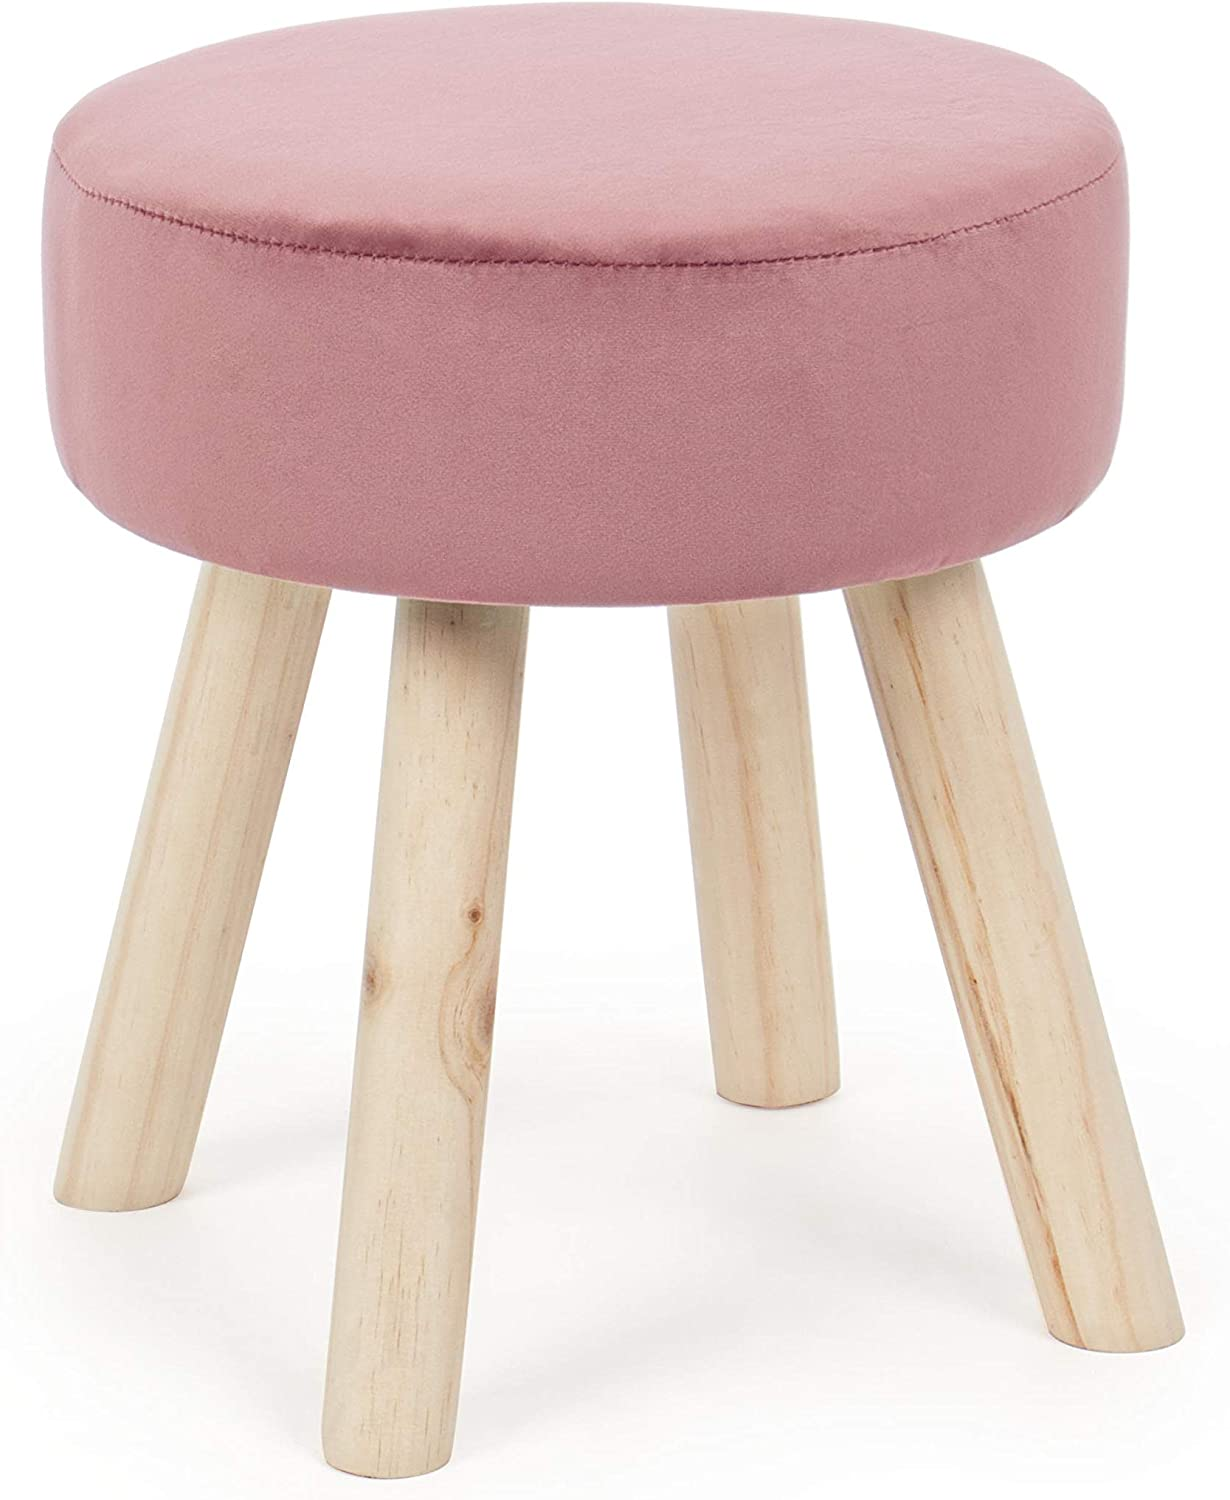 34a-34b-38h YES EVERYDAY Adeline Pouf Rosa